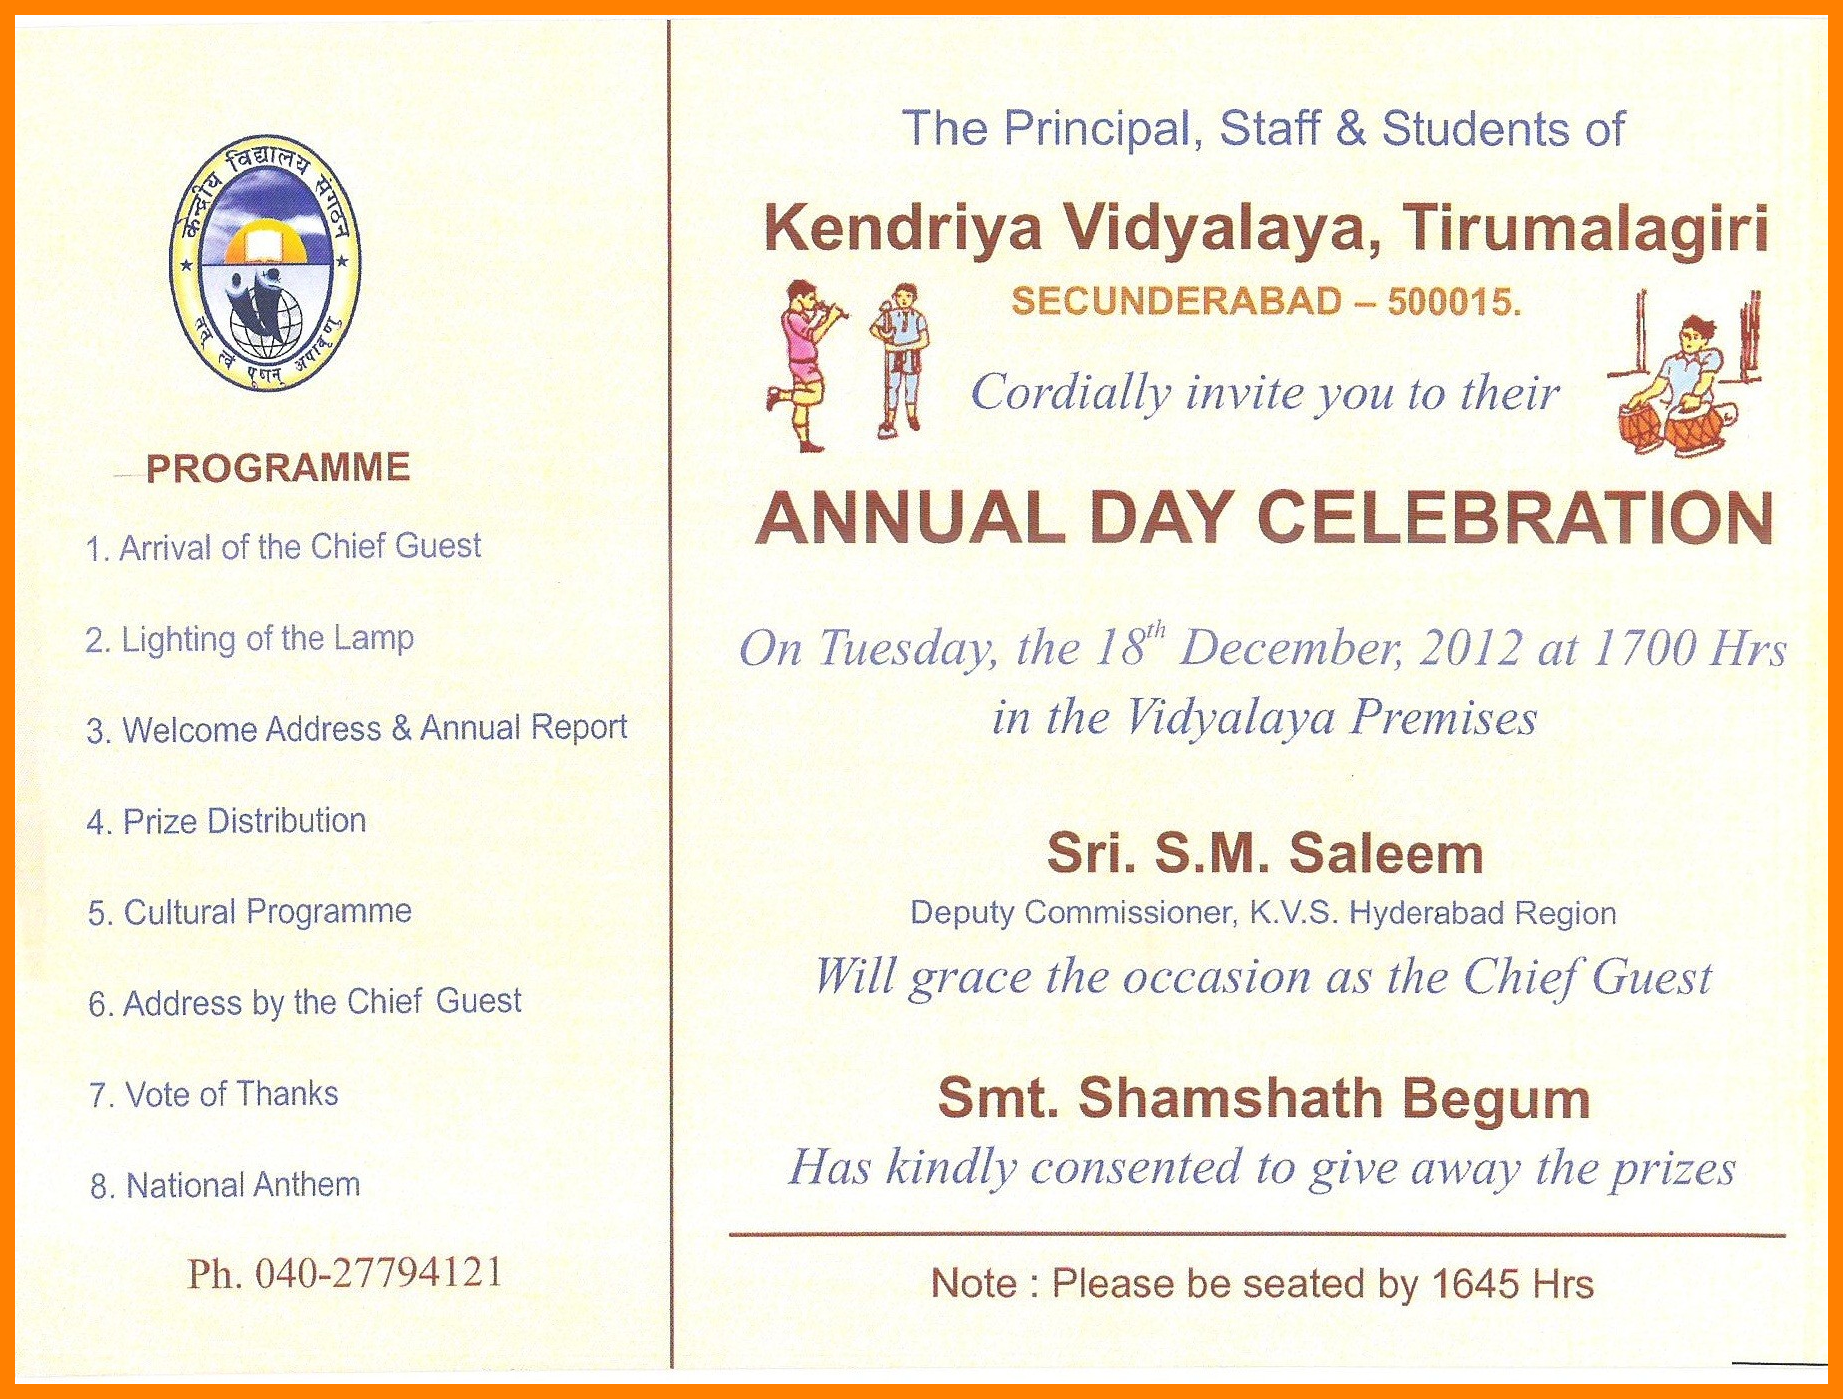 29 Creative Invitation Card Sample For Annual Day At School With Stunning  Design with Invitation Card Sample For Annual Day At School - Cards Design  Templates